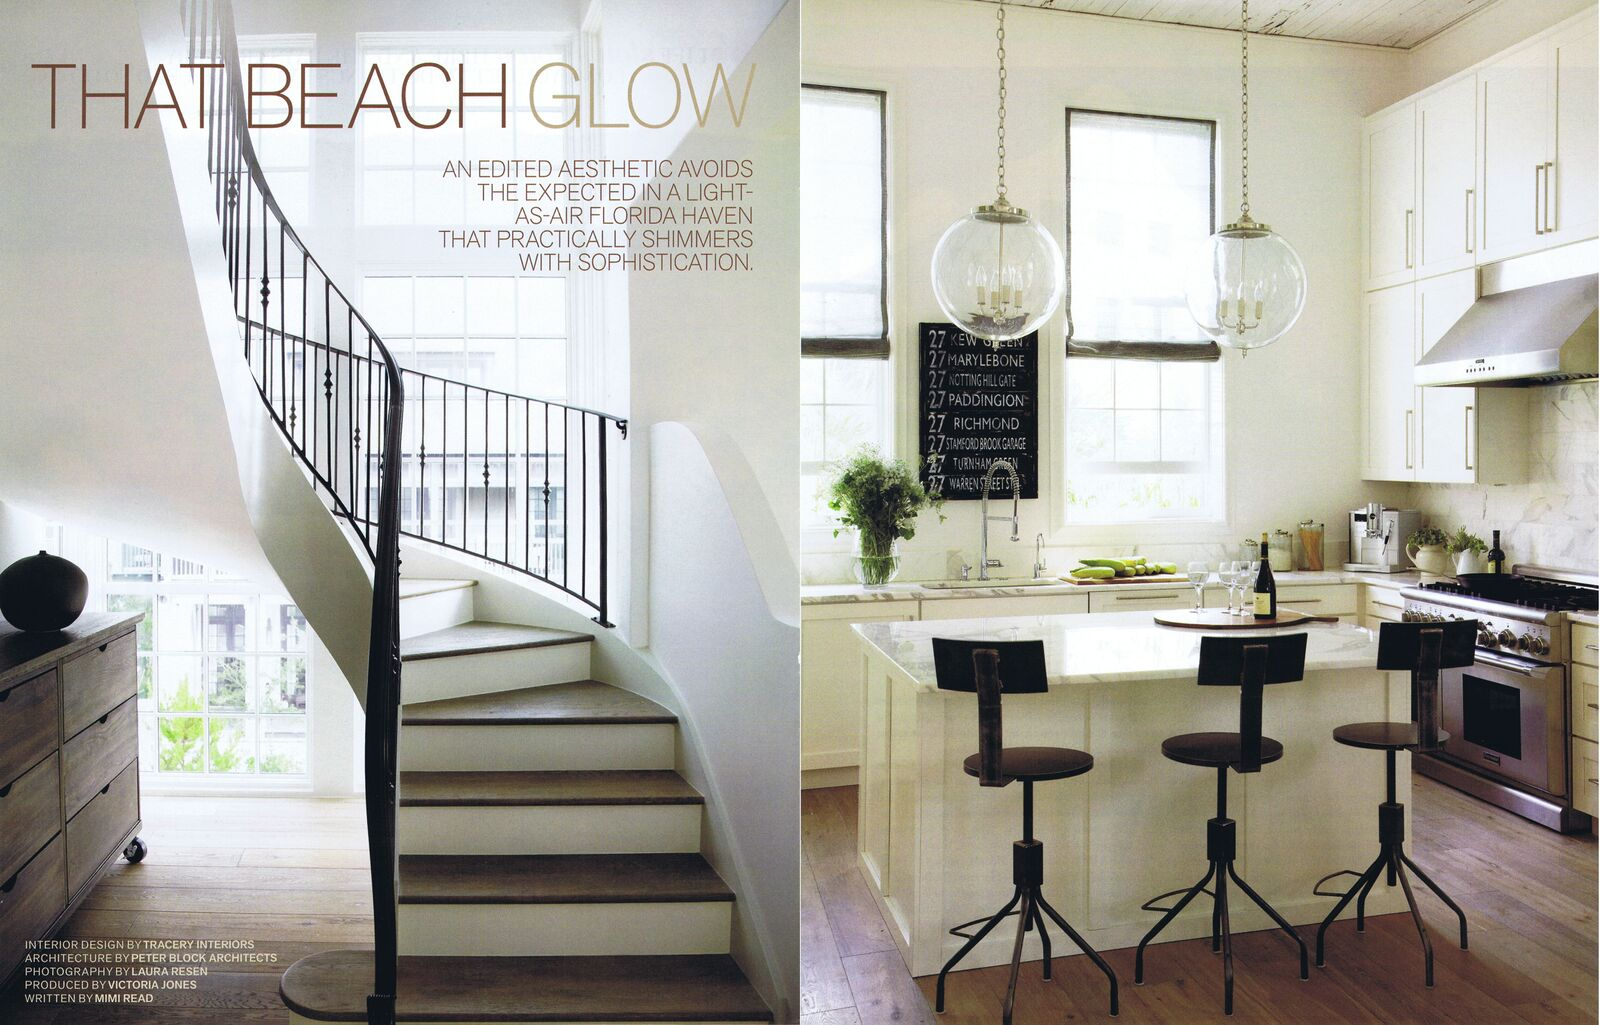 Beach House-Page 106-107_preview.jpg